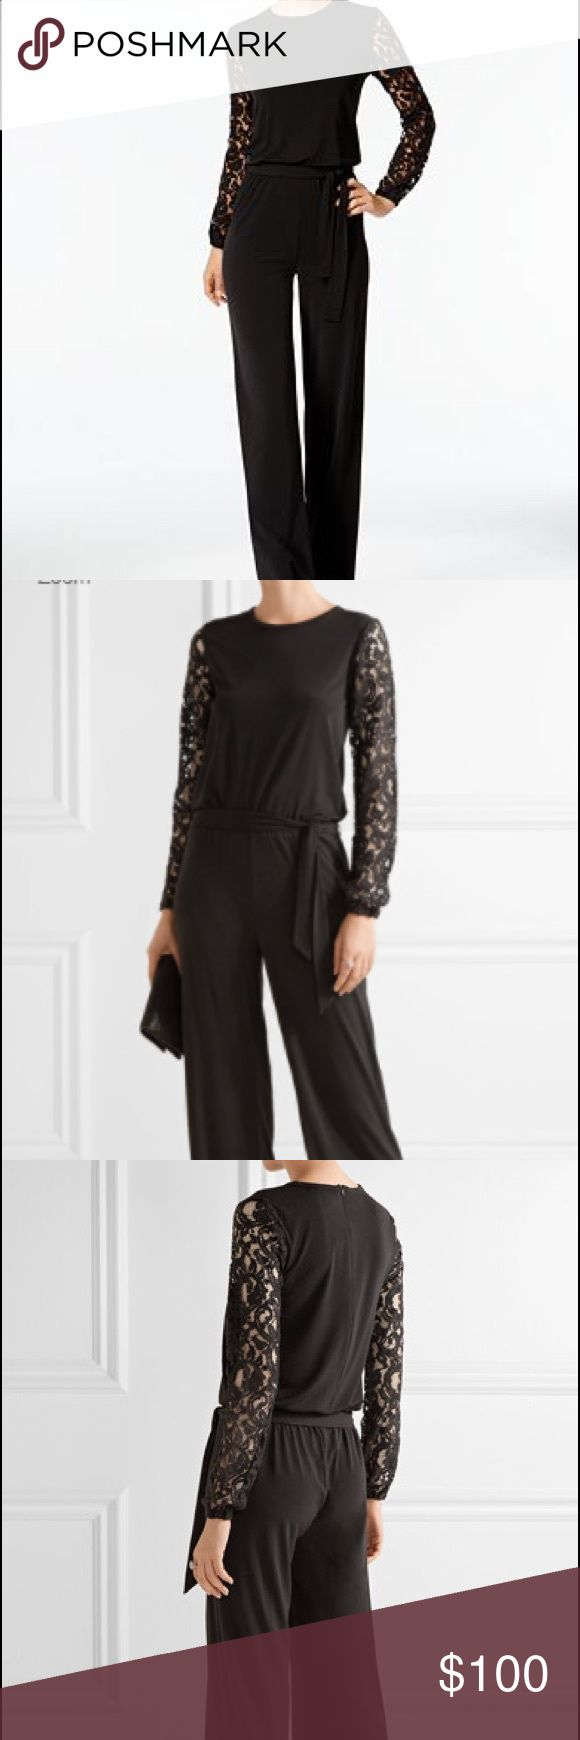 """NWT Black Michael Kors Wide Leg Jumpsuit Brand new with tags.   Lace sleeves, black relaxed fit and wide leg jump suit.  Measures approximately 24"""" armpit to armpit, shoulder to waist band length is 22"""", waist measures 21.5' across flat, waist to bottom hem is 46"""" and pant inseam is 33"""".  The Leg opening at the hem is 13.5"""" across flat.  True to size, very flattering and comfortable.  The material is stretchy.  Zips in the back, no flaws. Michael Kors Pants Jumpsuits & Rompers"""